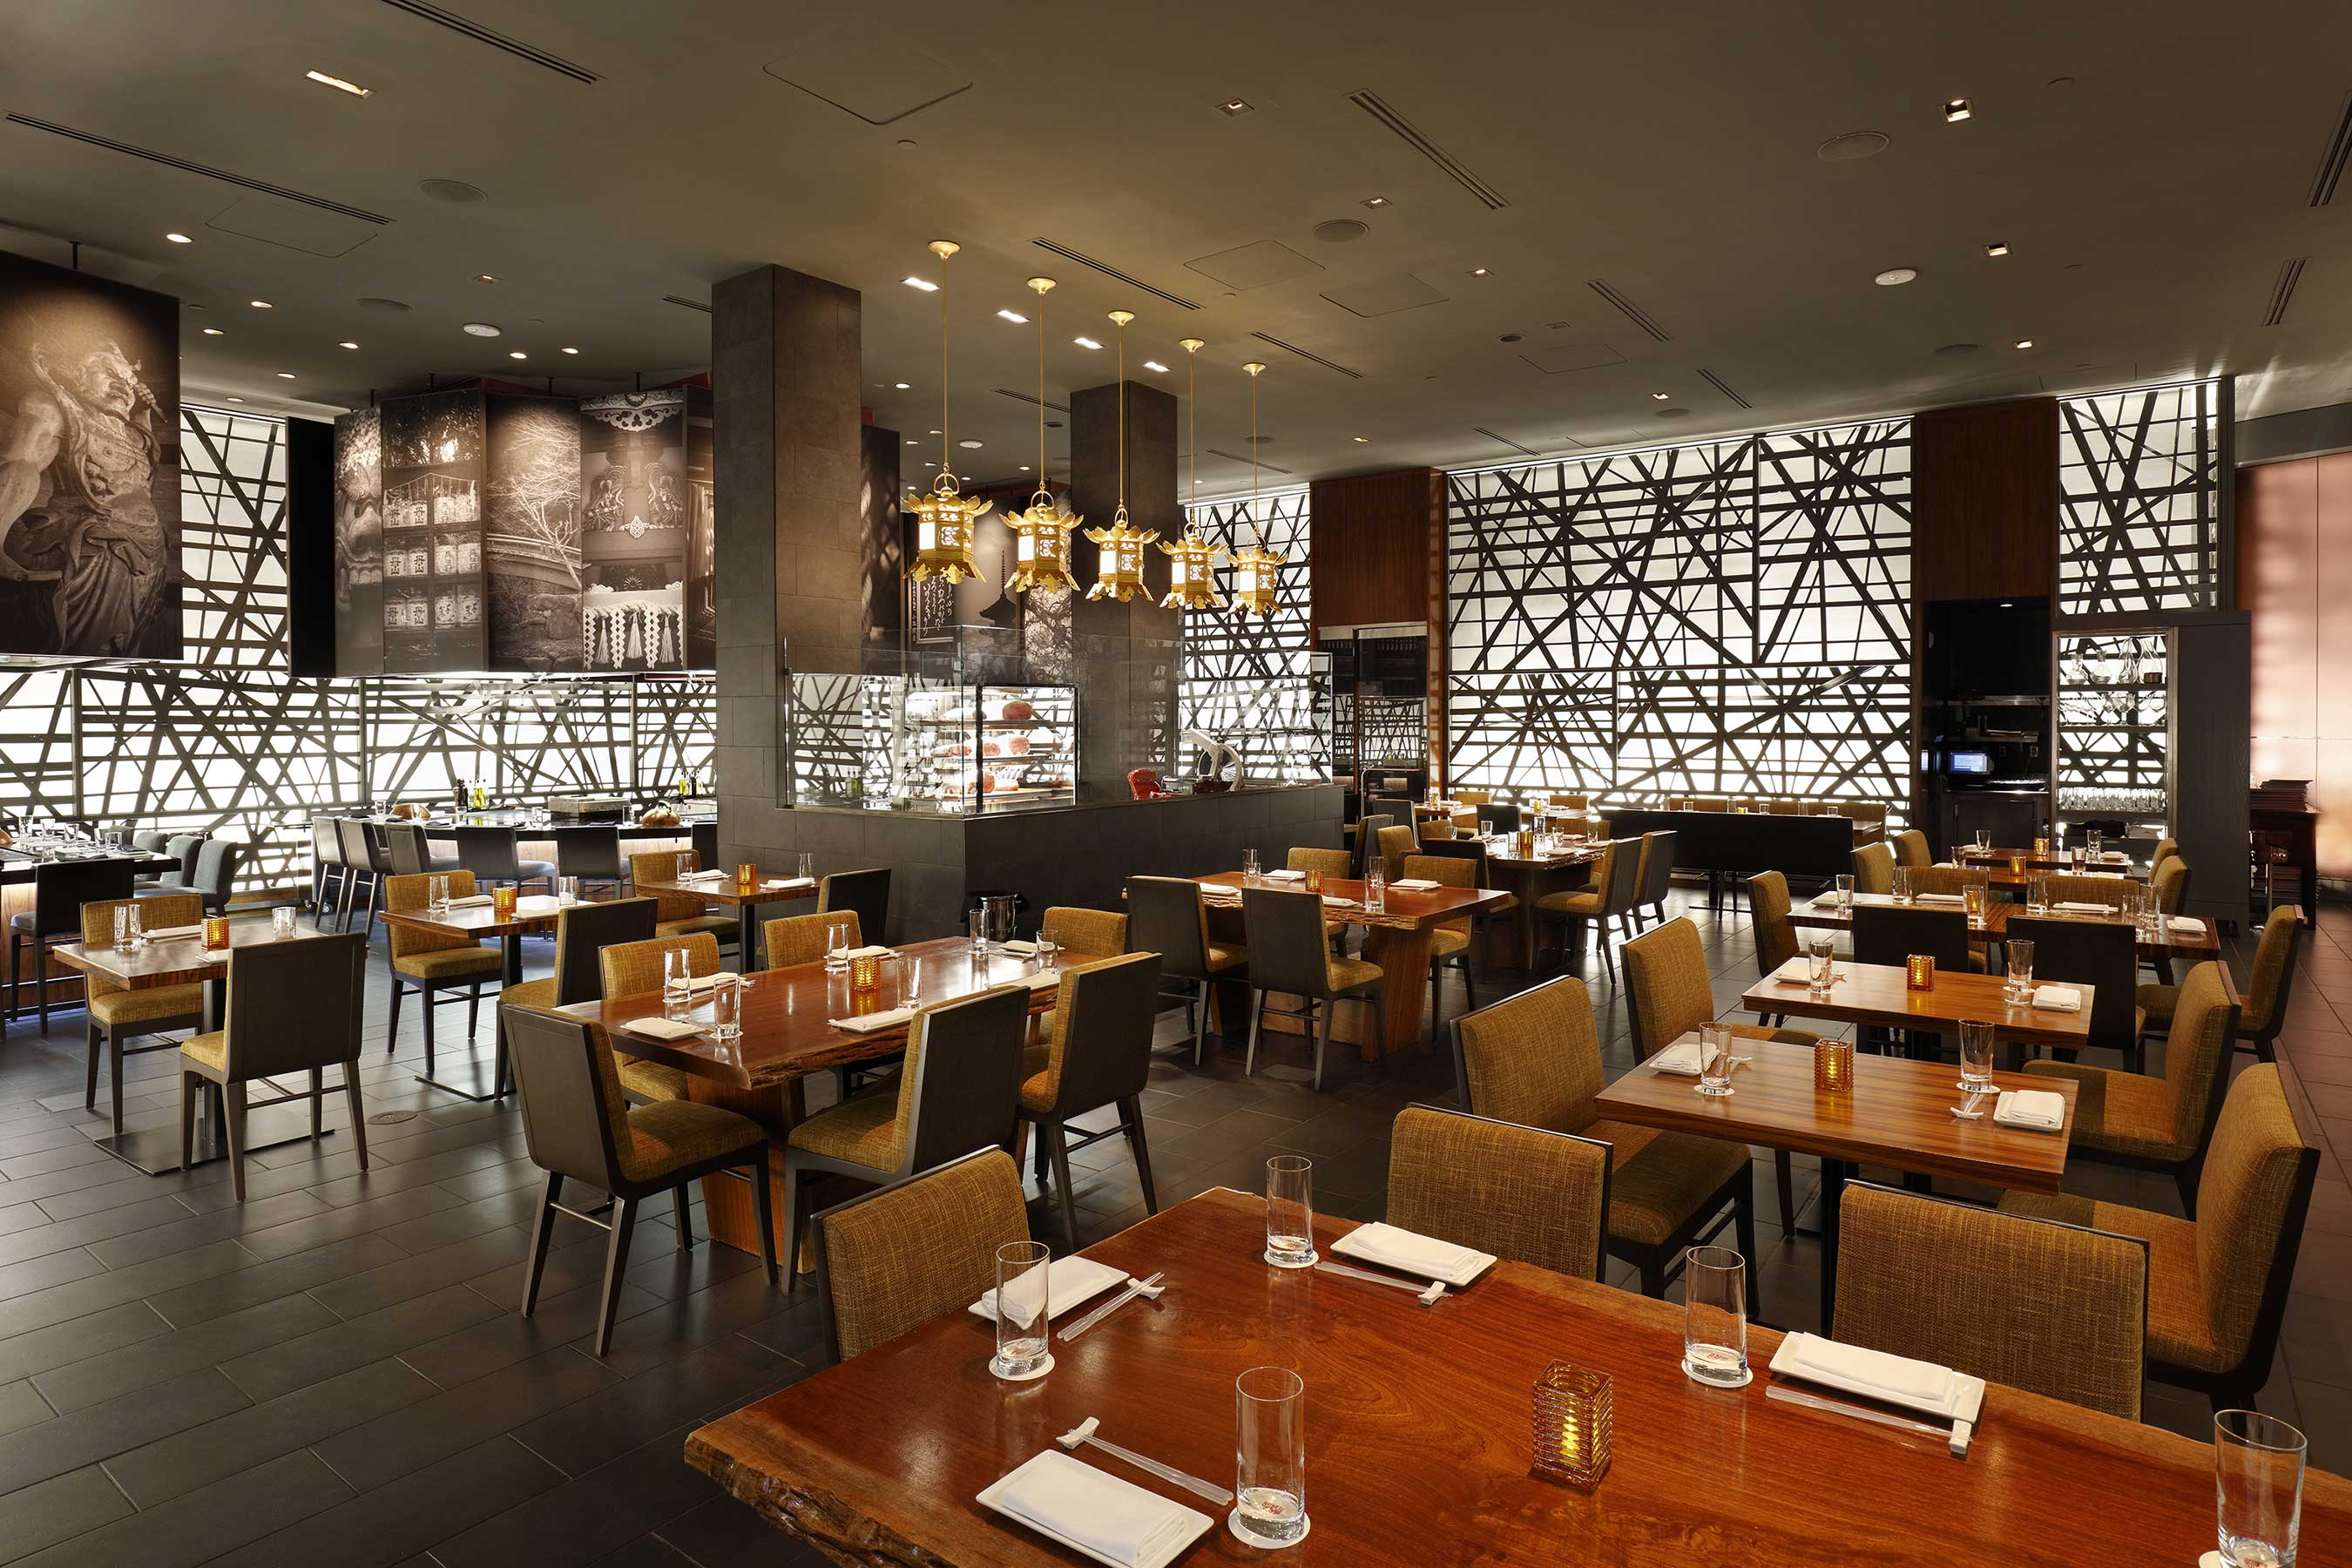 Diverse spaces with colorful Japanese artwork and compelling design elements provide guests with a serene atmosphere to savor Chef Morimoto's cuisine.